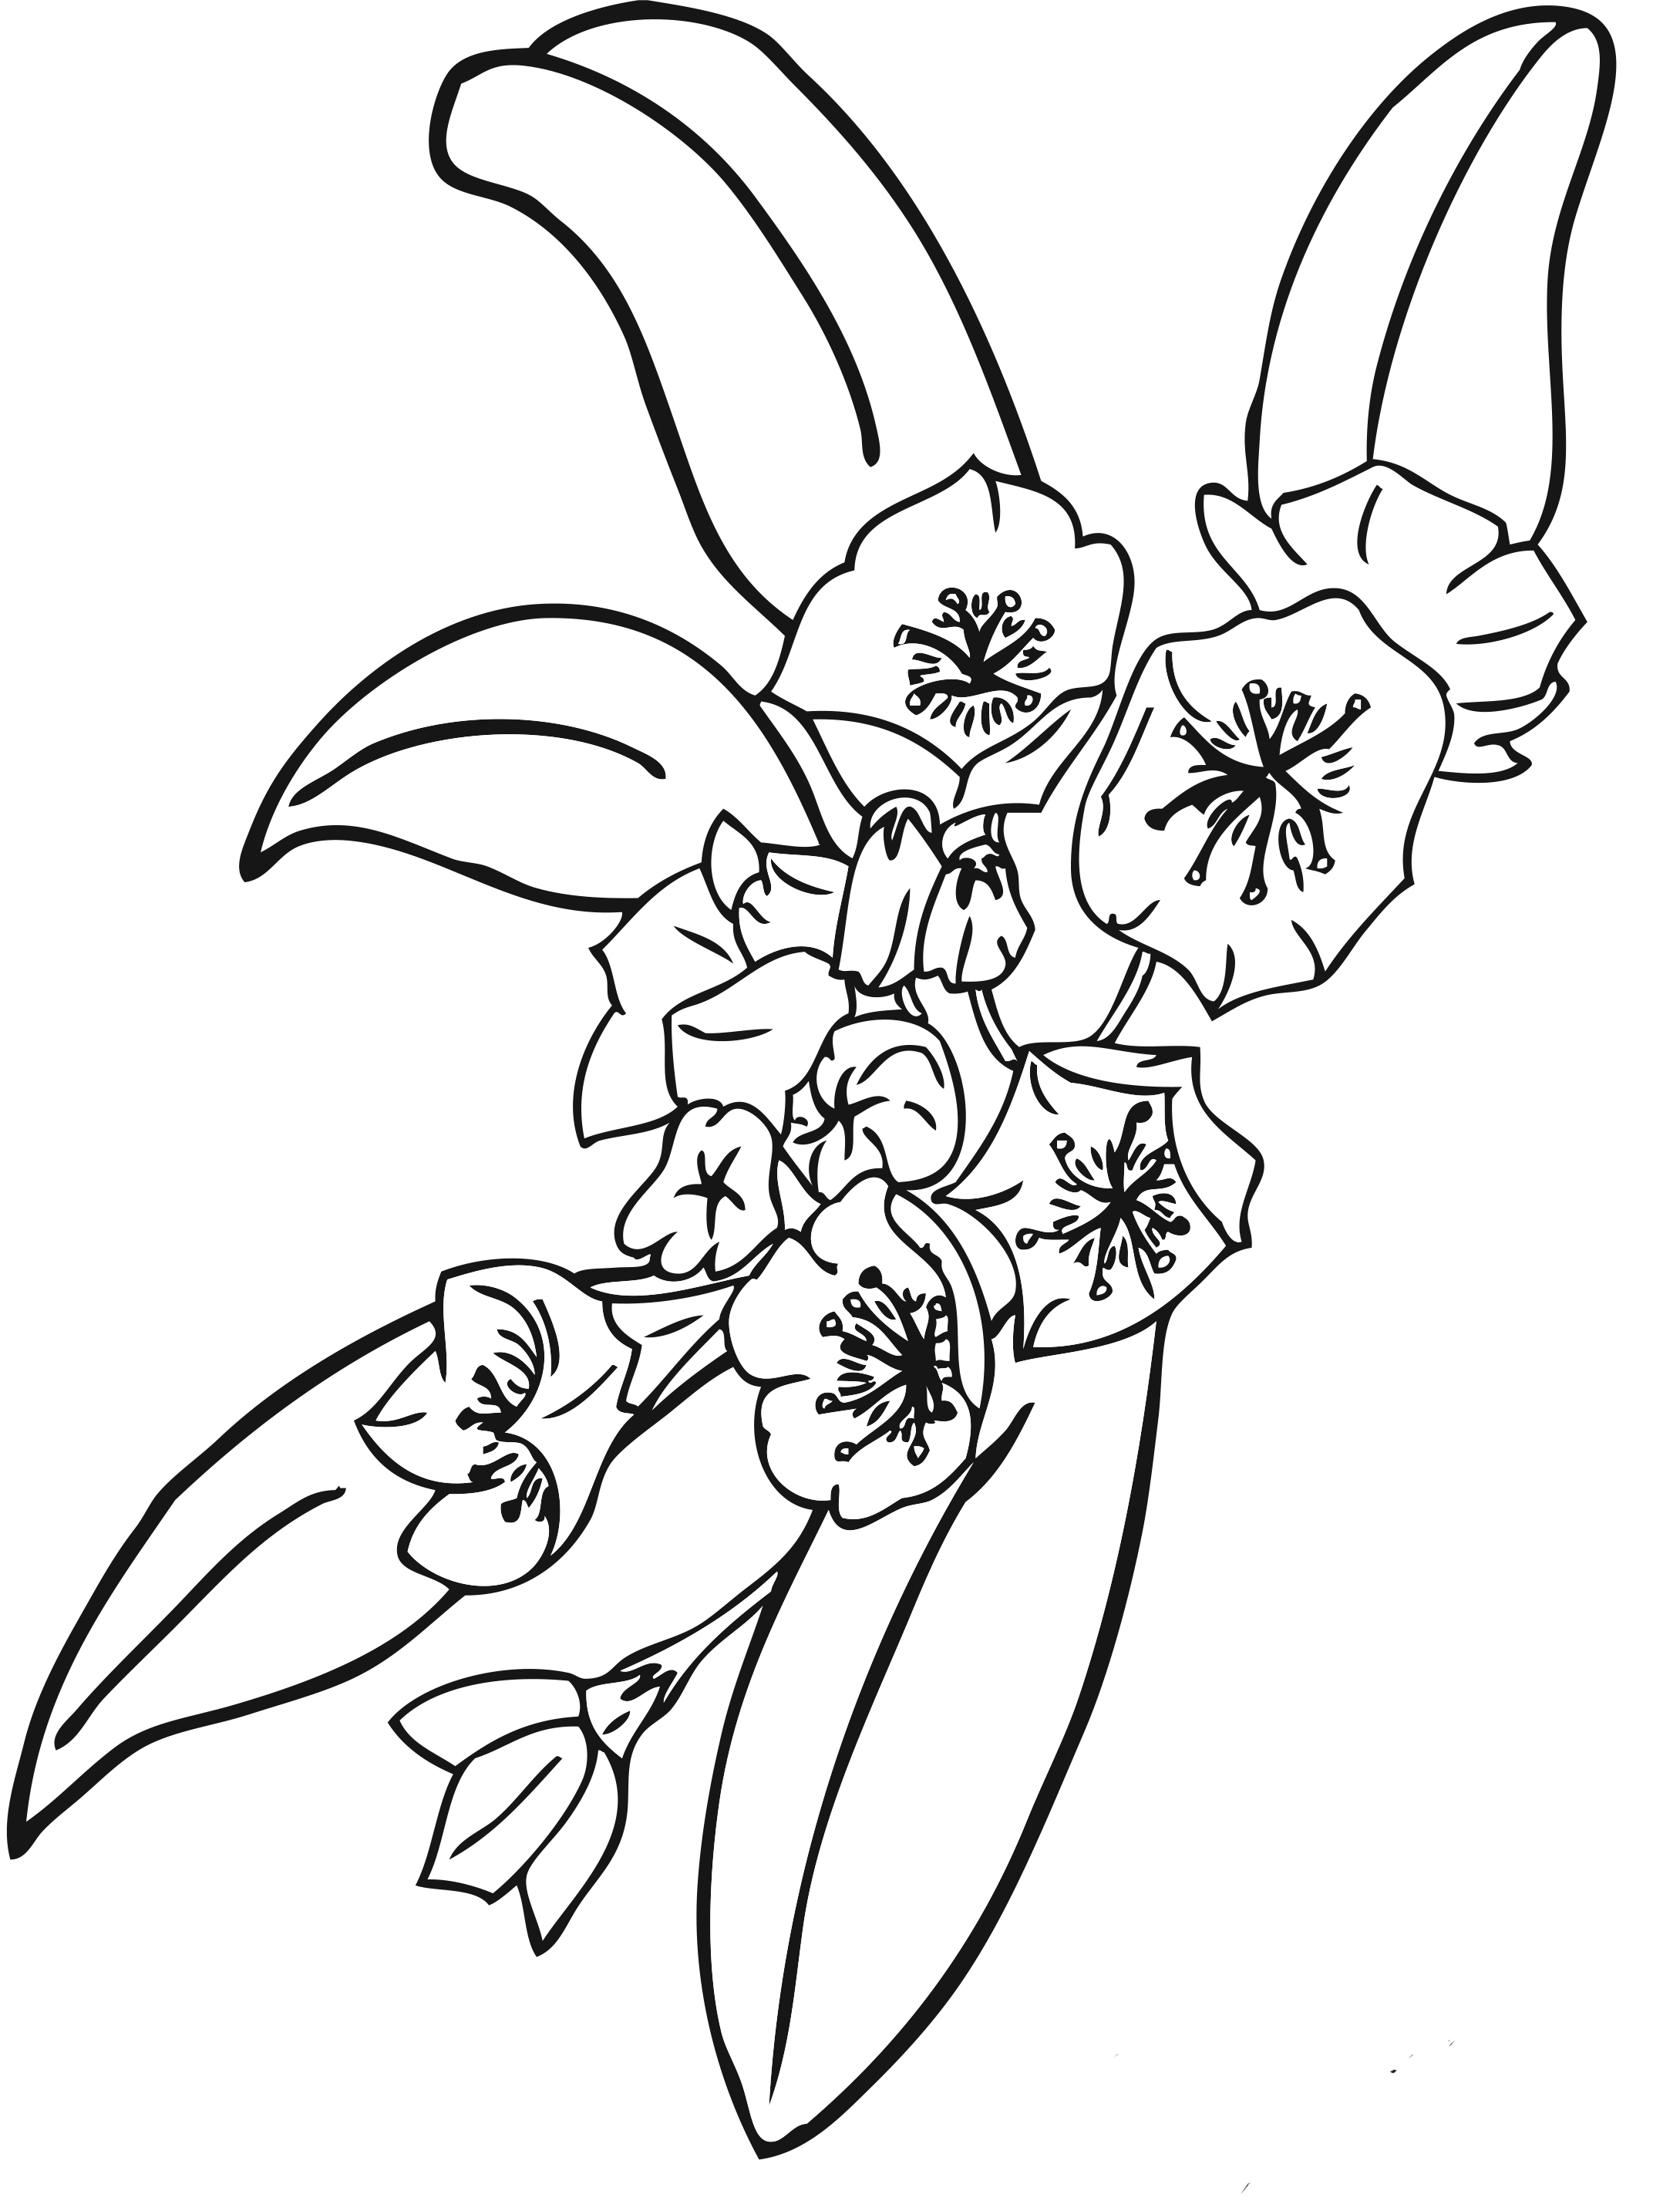 Wonderful Printable Pictures Of Flowers To Color